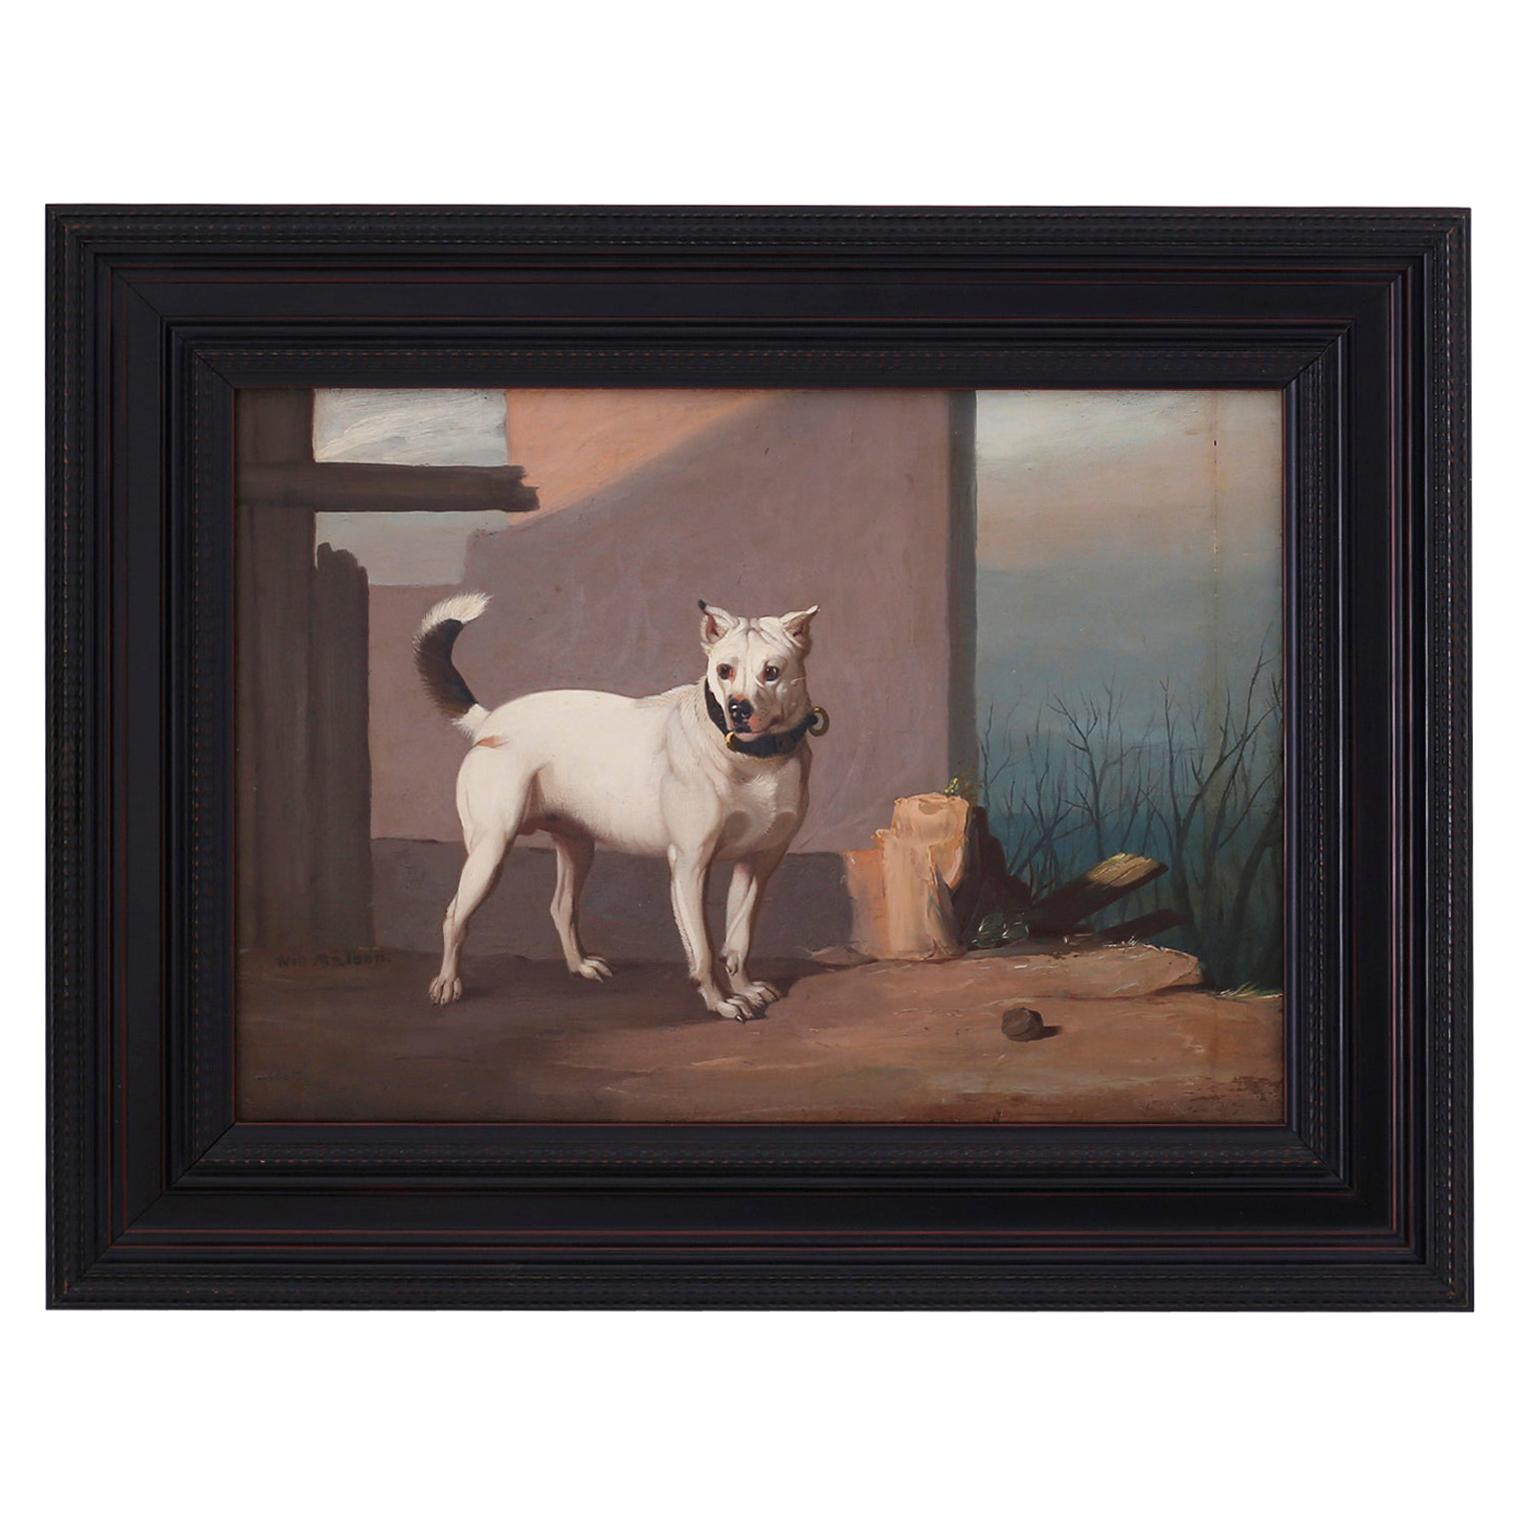 Antique Oil Painting on Board of a Dog